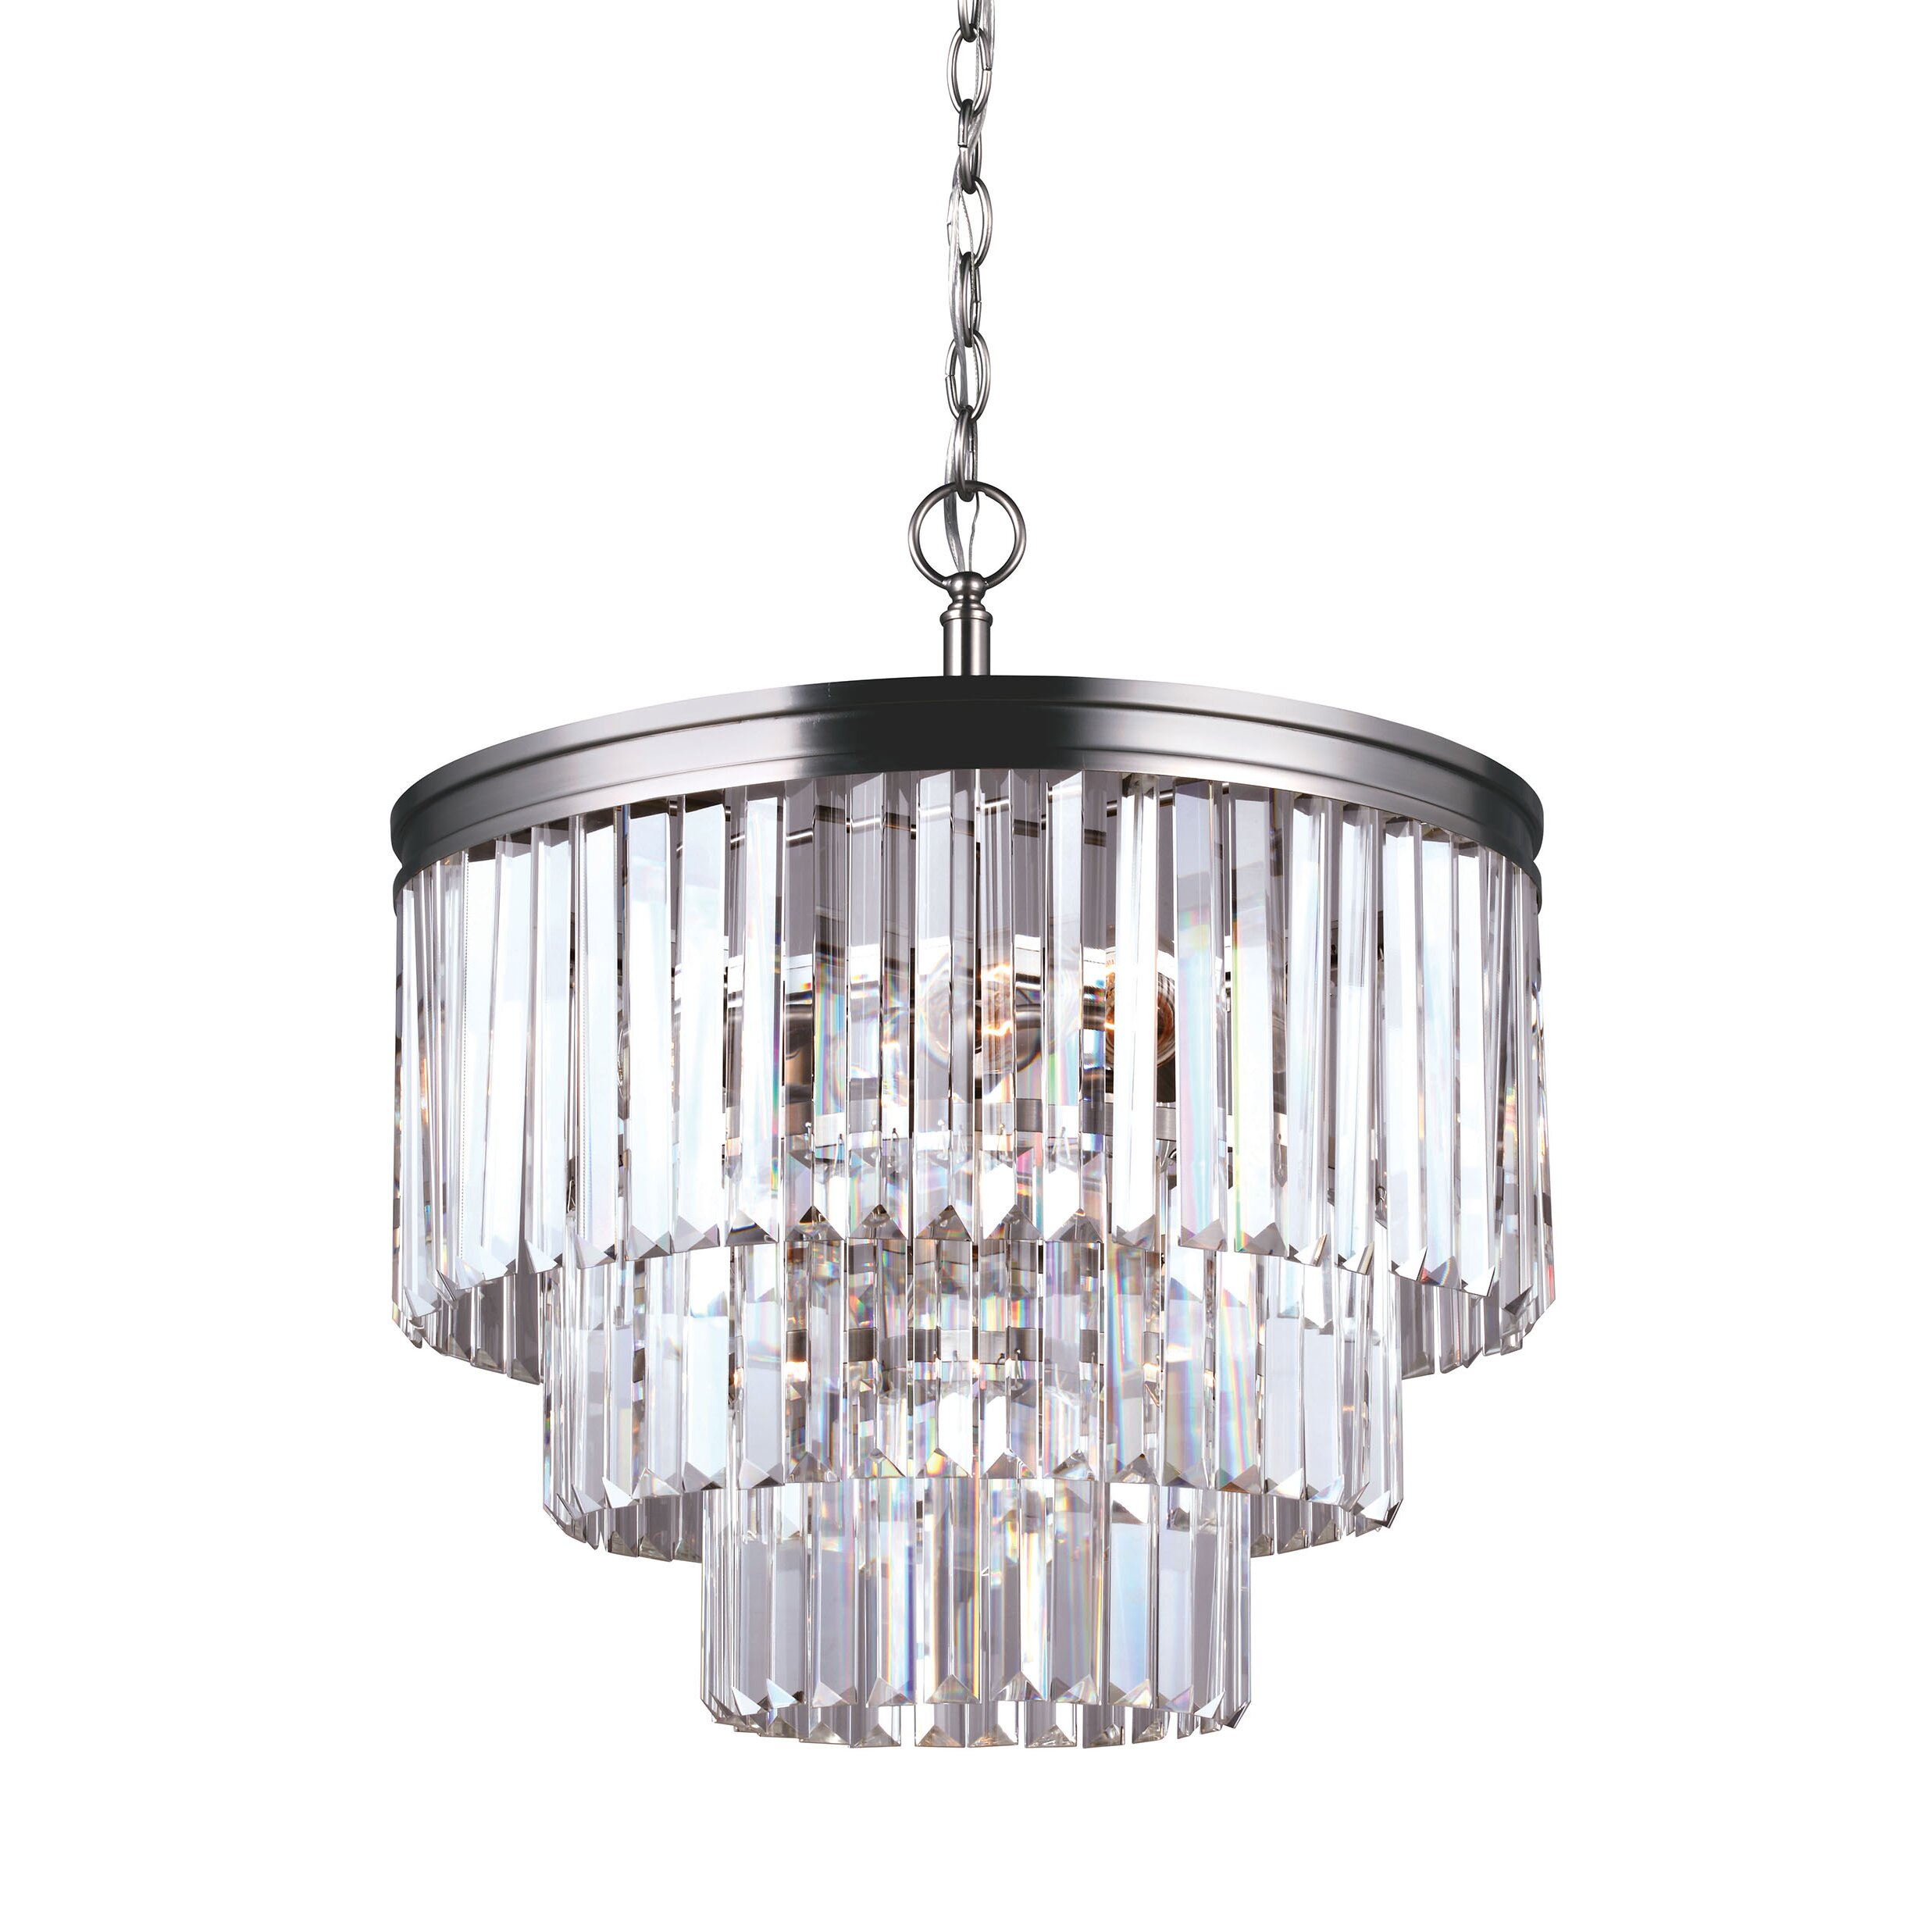 Modern Contemporary Chandeliers – Modern Crystal Chandeliers